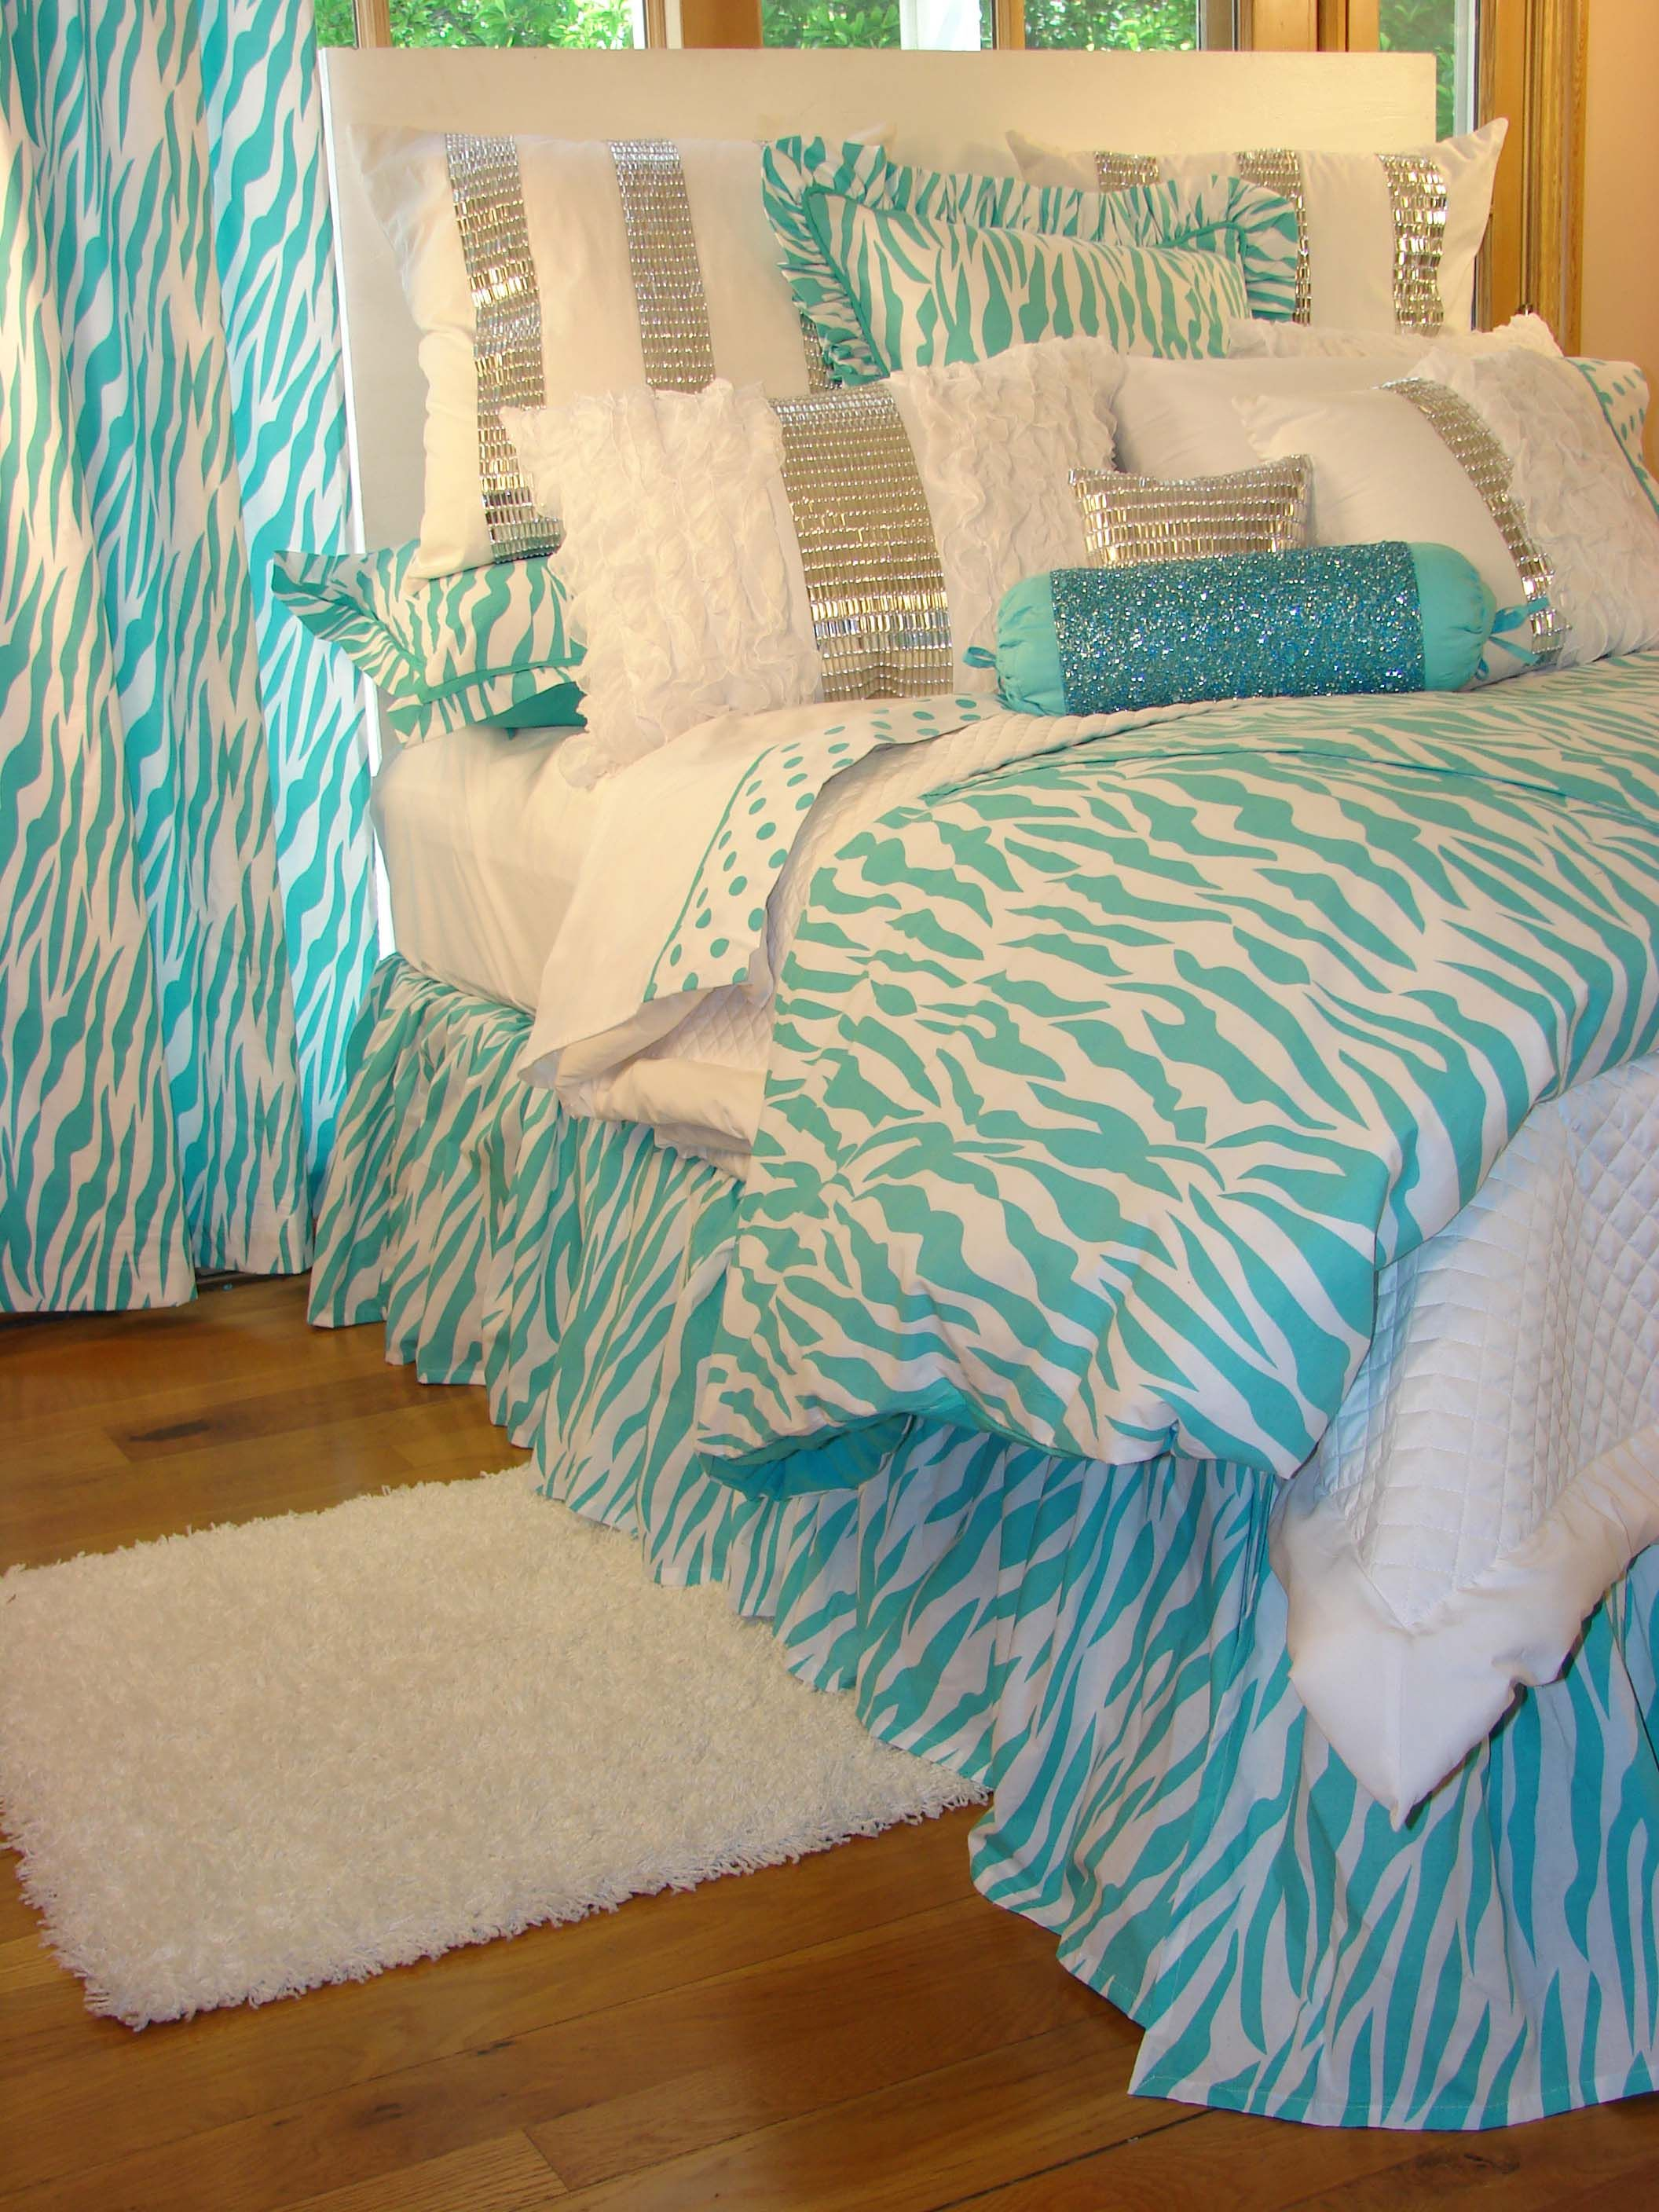 Bed sheets for teenagers - Tween Teen Bedding Turquoise Zebra Glamour Bedding Collection Sweet And Sour Kids